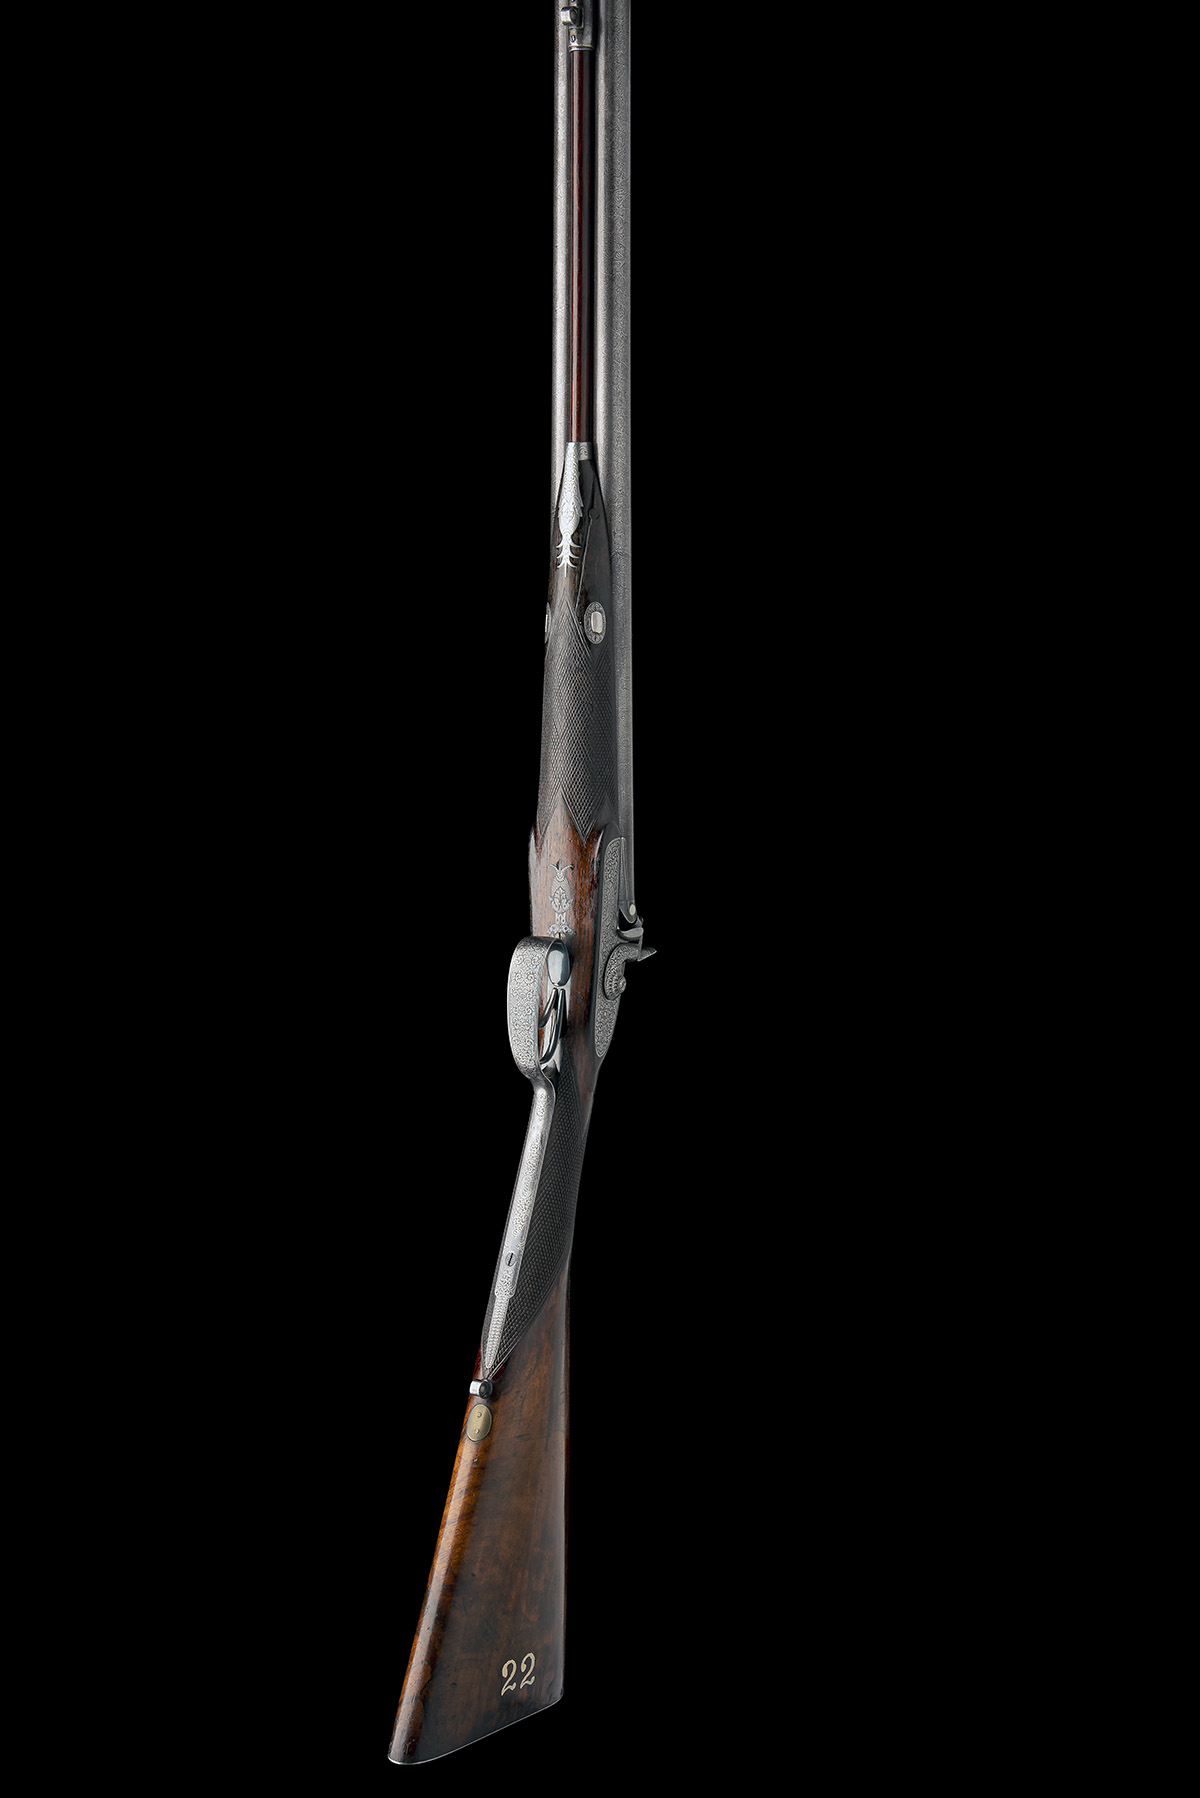 CHARLES LANCASTER, LONDON A CASED 12-BORE PERCUSSION DOUBLE-BARRELLED SPORTING-GUN, serial no. 2292, - Image 5 of 11